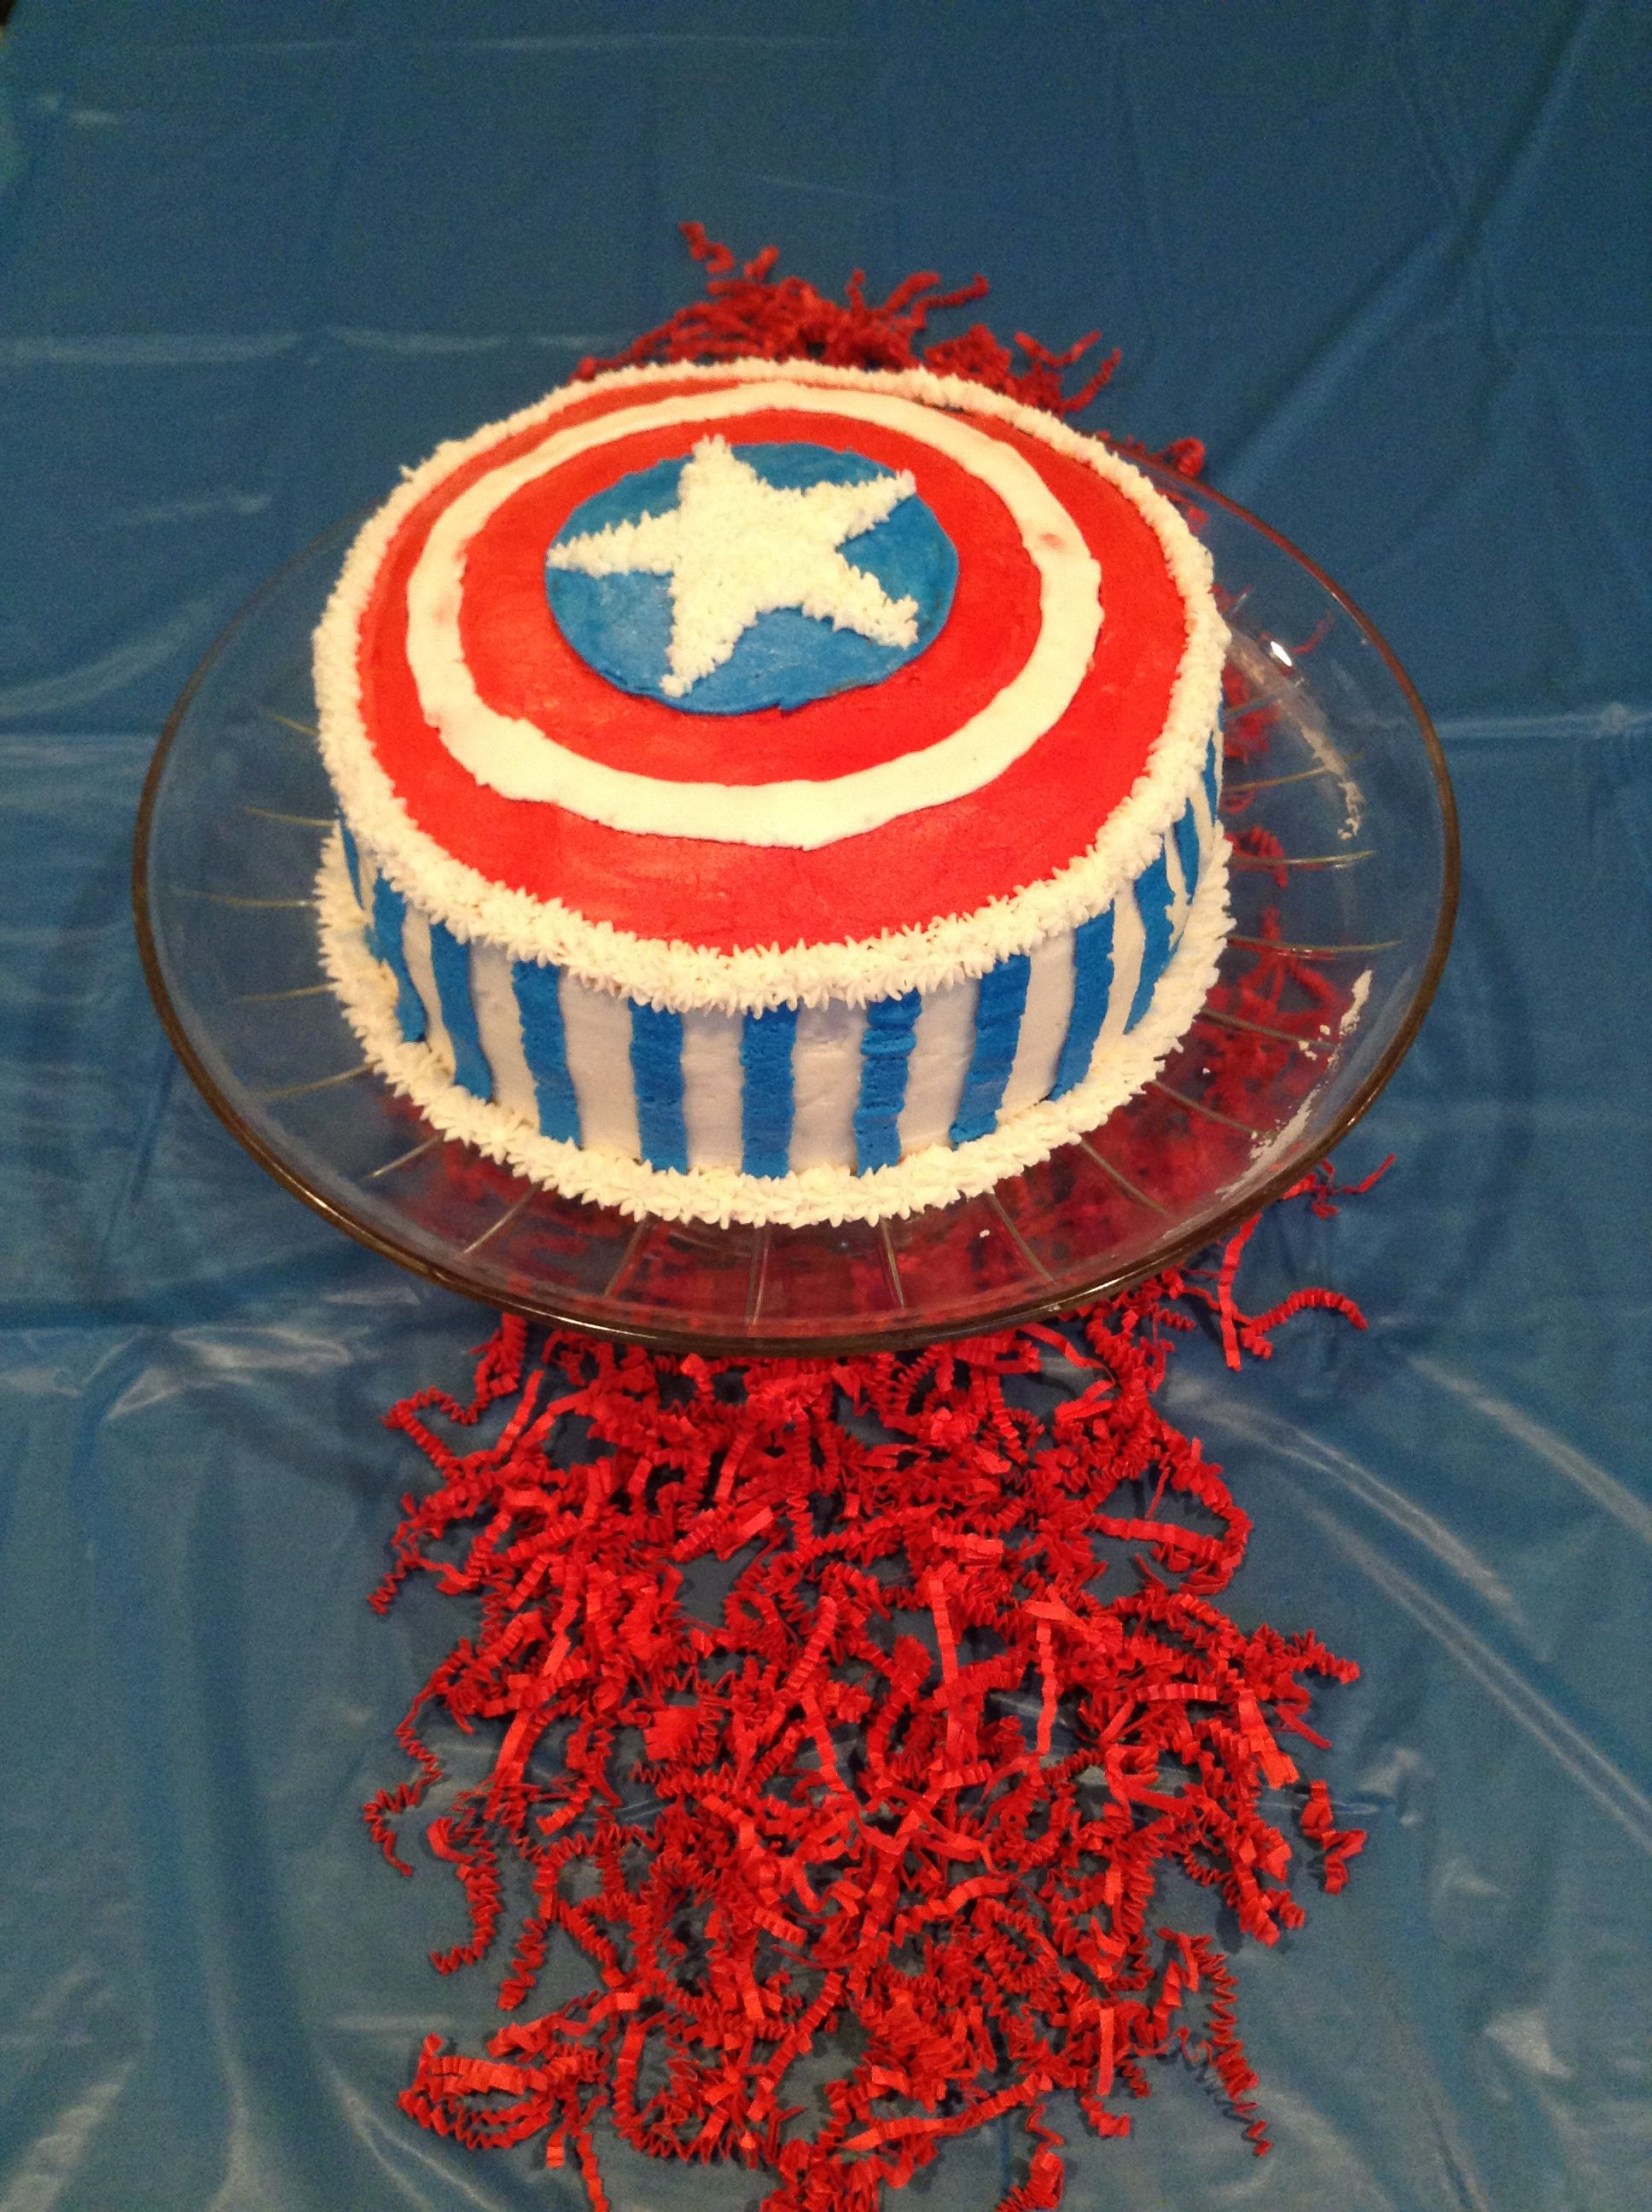 Awesome 10 Year Old Boys Birthday Cakecaptain America CakeCaptain Shieldawesome Cakes Cool Cake